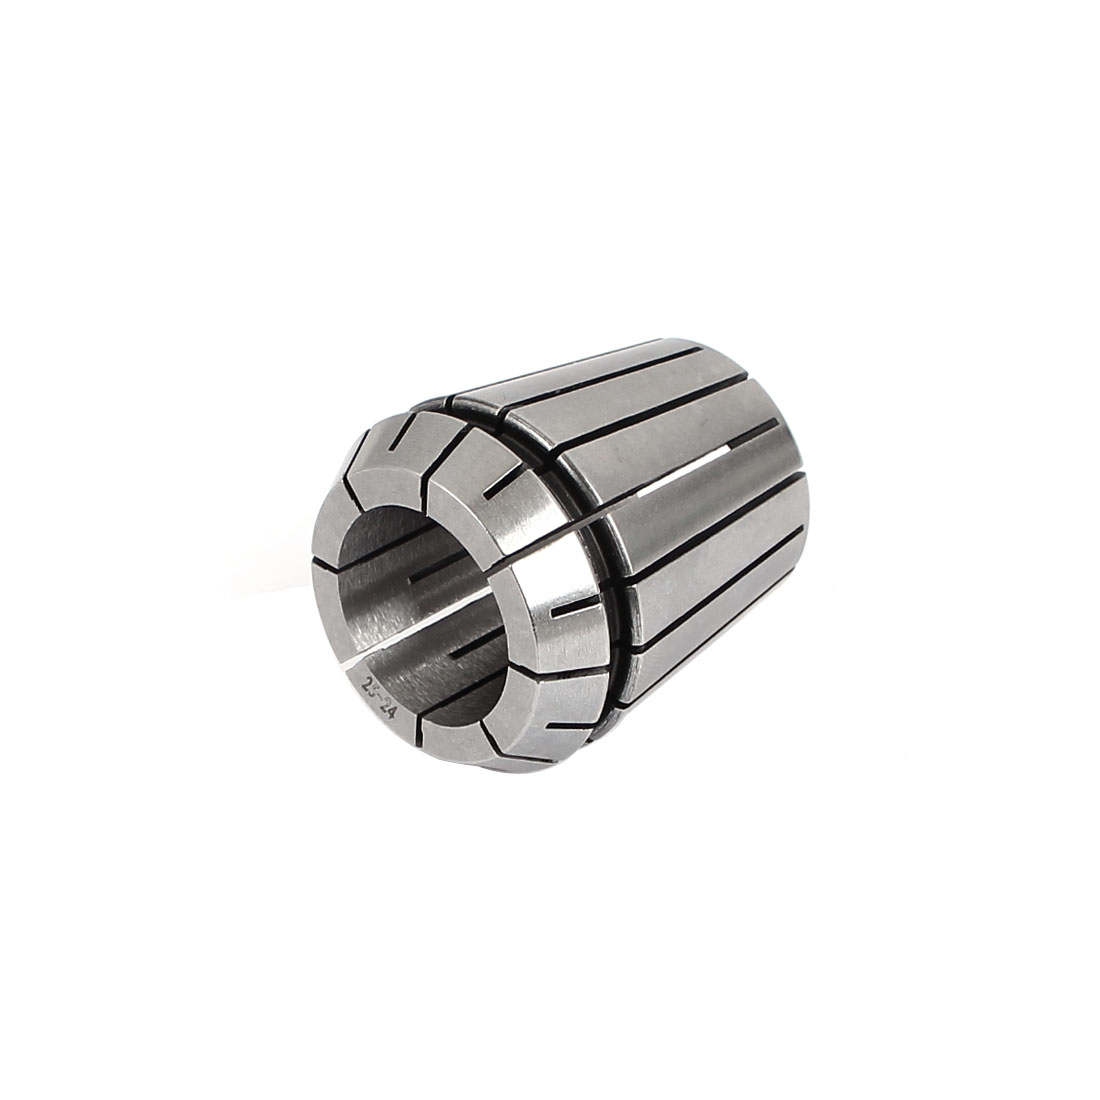 ER40 CNC Workholding Engraving Milling Lathe Tool Spring Collet 25mm-24mm Clamping Range